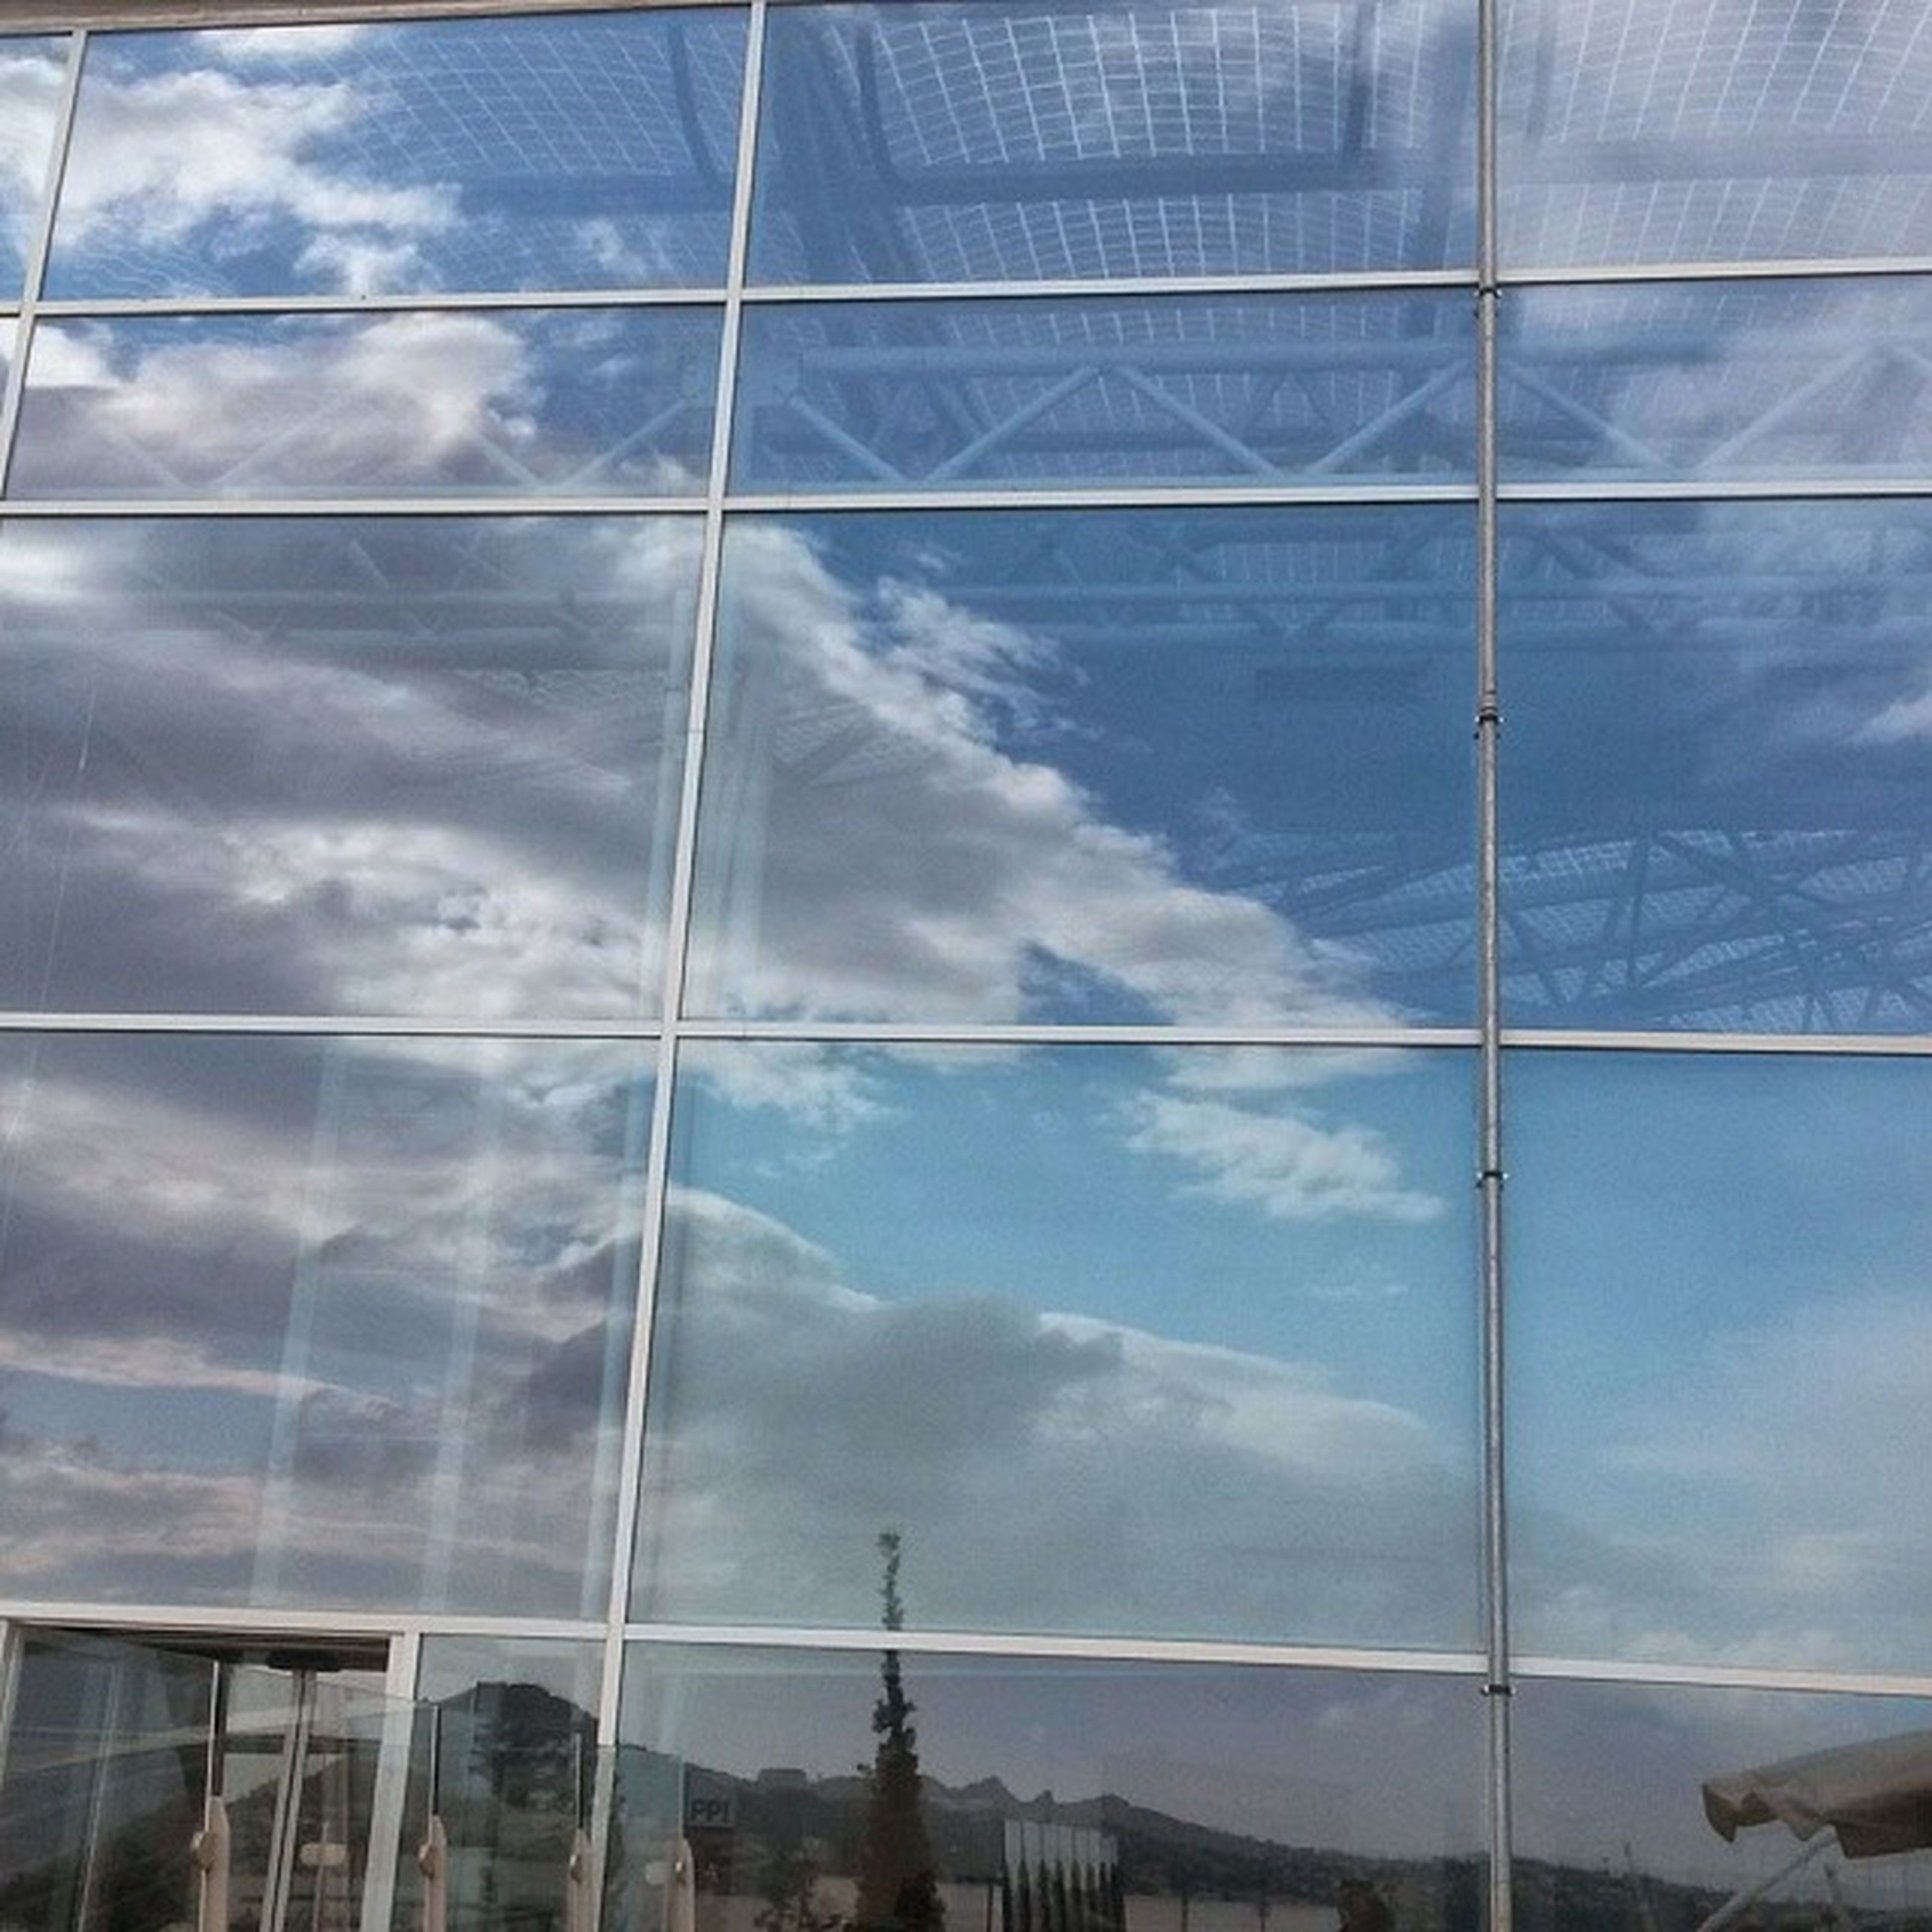 sky, architecture, built structure, low angle view, cloud - sky, glass - material, building exterior, modern, blue, reflection, cloud, cloudy, day, window, building, no people, transparent, glass, city, outdoors